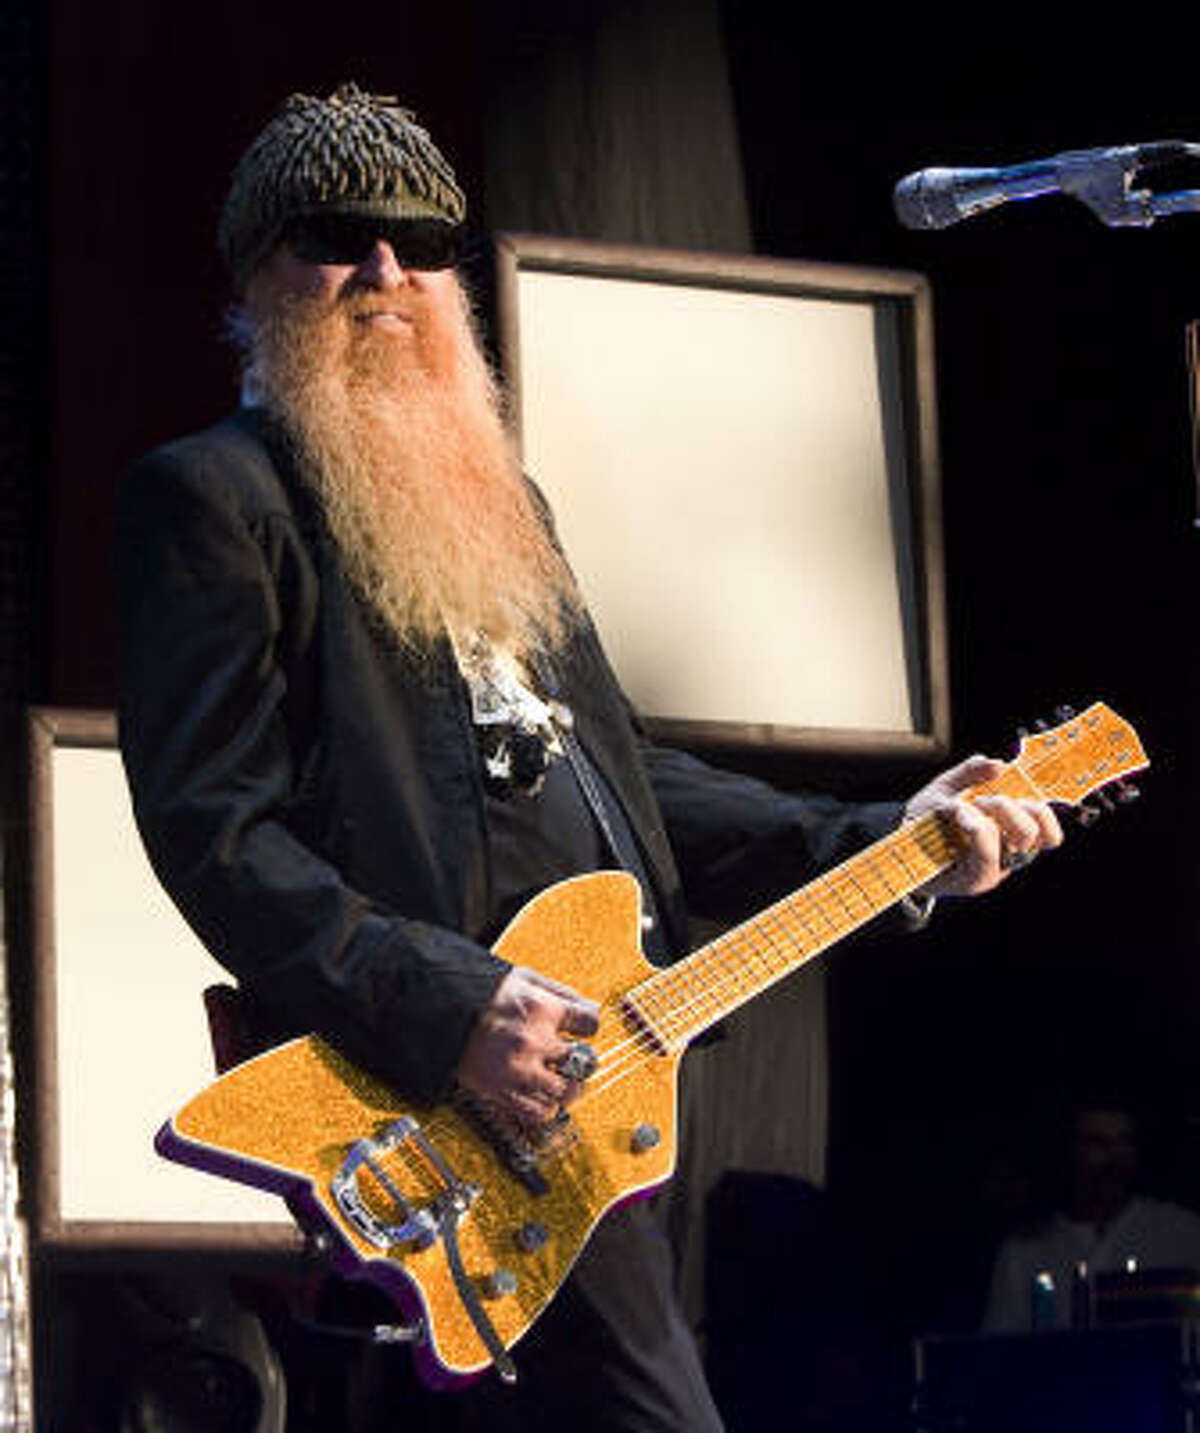 Billy F. Gibbons performs during the ZZ Top concert at the Cynthia Woods Mitchell Pavilion.